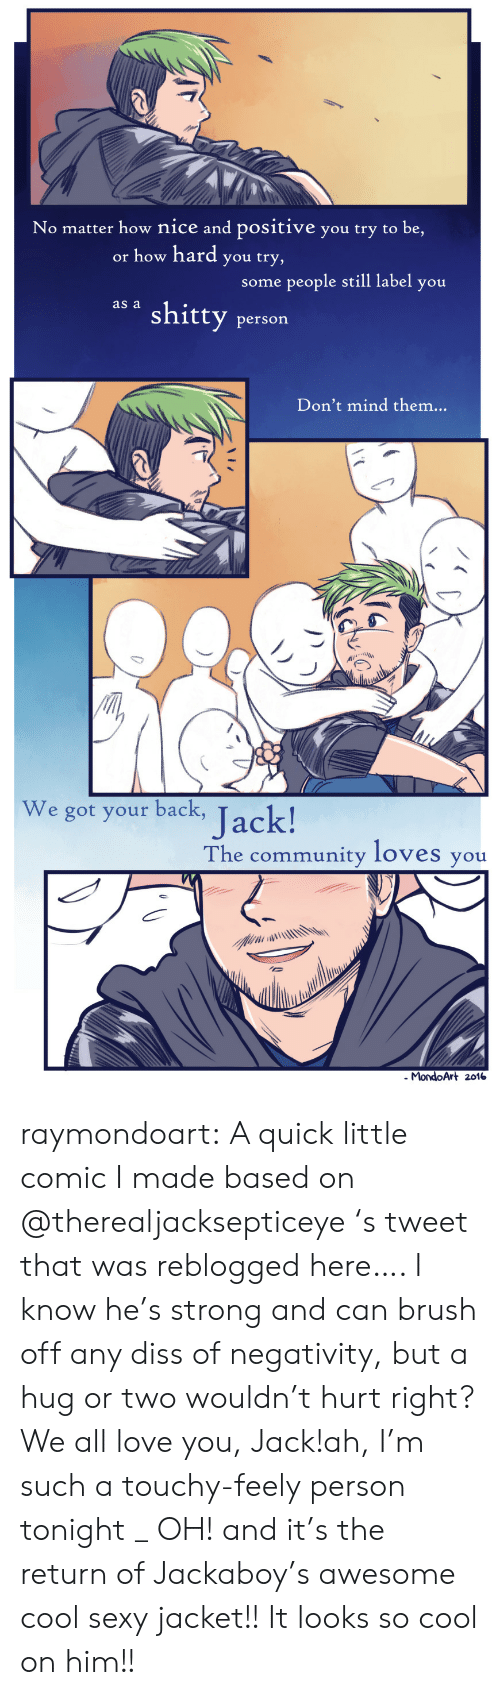 Touchy: No matter how nice and positive you try to be,  or how hard you try,  some people still label you  as a shitty person  Don't mind them...  We got your back,  ack!  The community loves you  . MondoArt 2016 raymondoart:  A quick little comic I made based on @therealjacksepticeye 's tweet that was reblogged here…. I know he's strong and can brush off any diss of negativity, but a hug or two wouldn't hurt right?We all love you, Jack!ah, I'm such a touchy-feely person tonight _ OH! and it's the return of Jackaboy's awesome cool sexy jacket!! It looks so cool on him!!